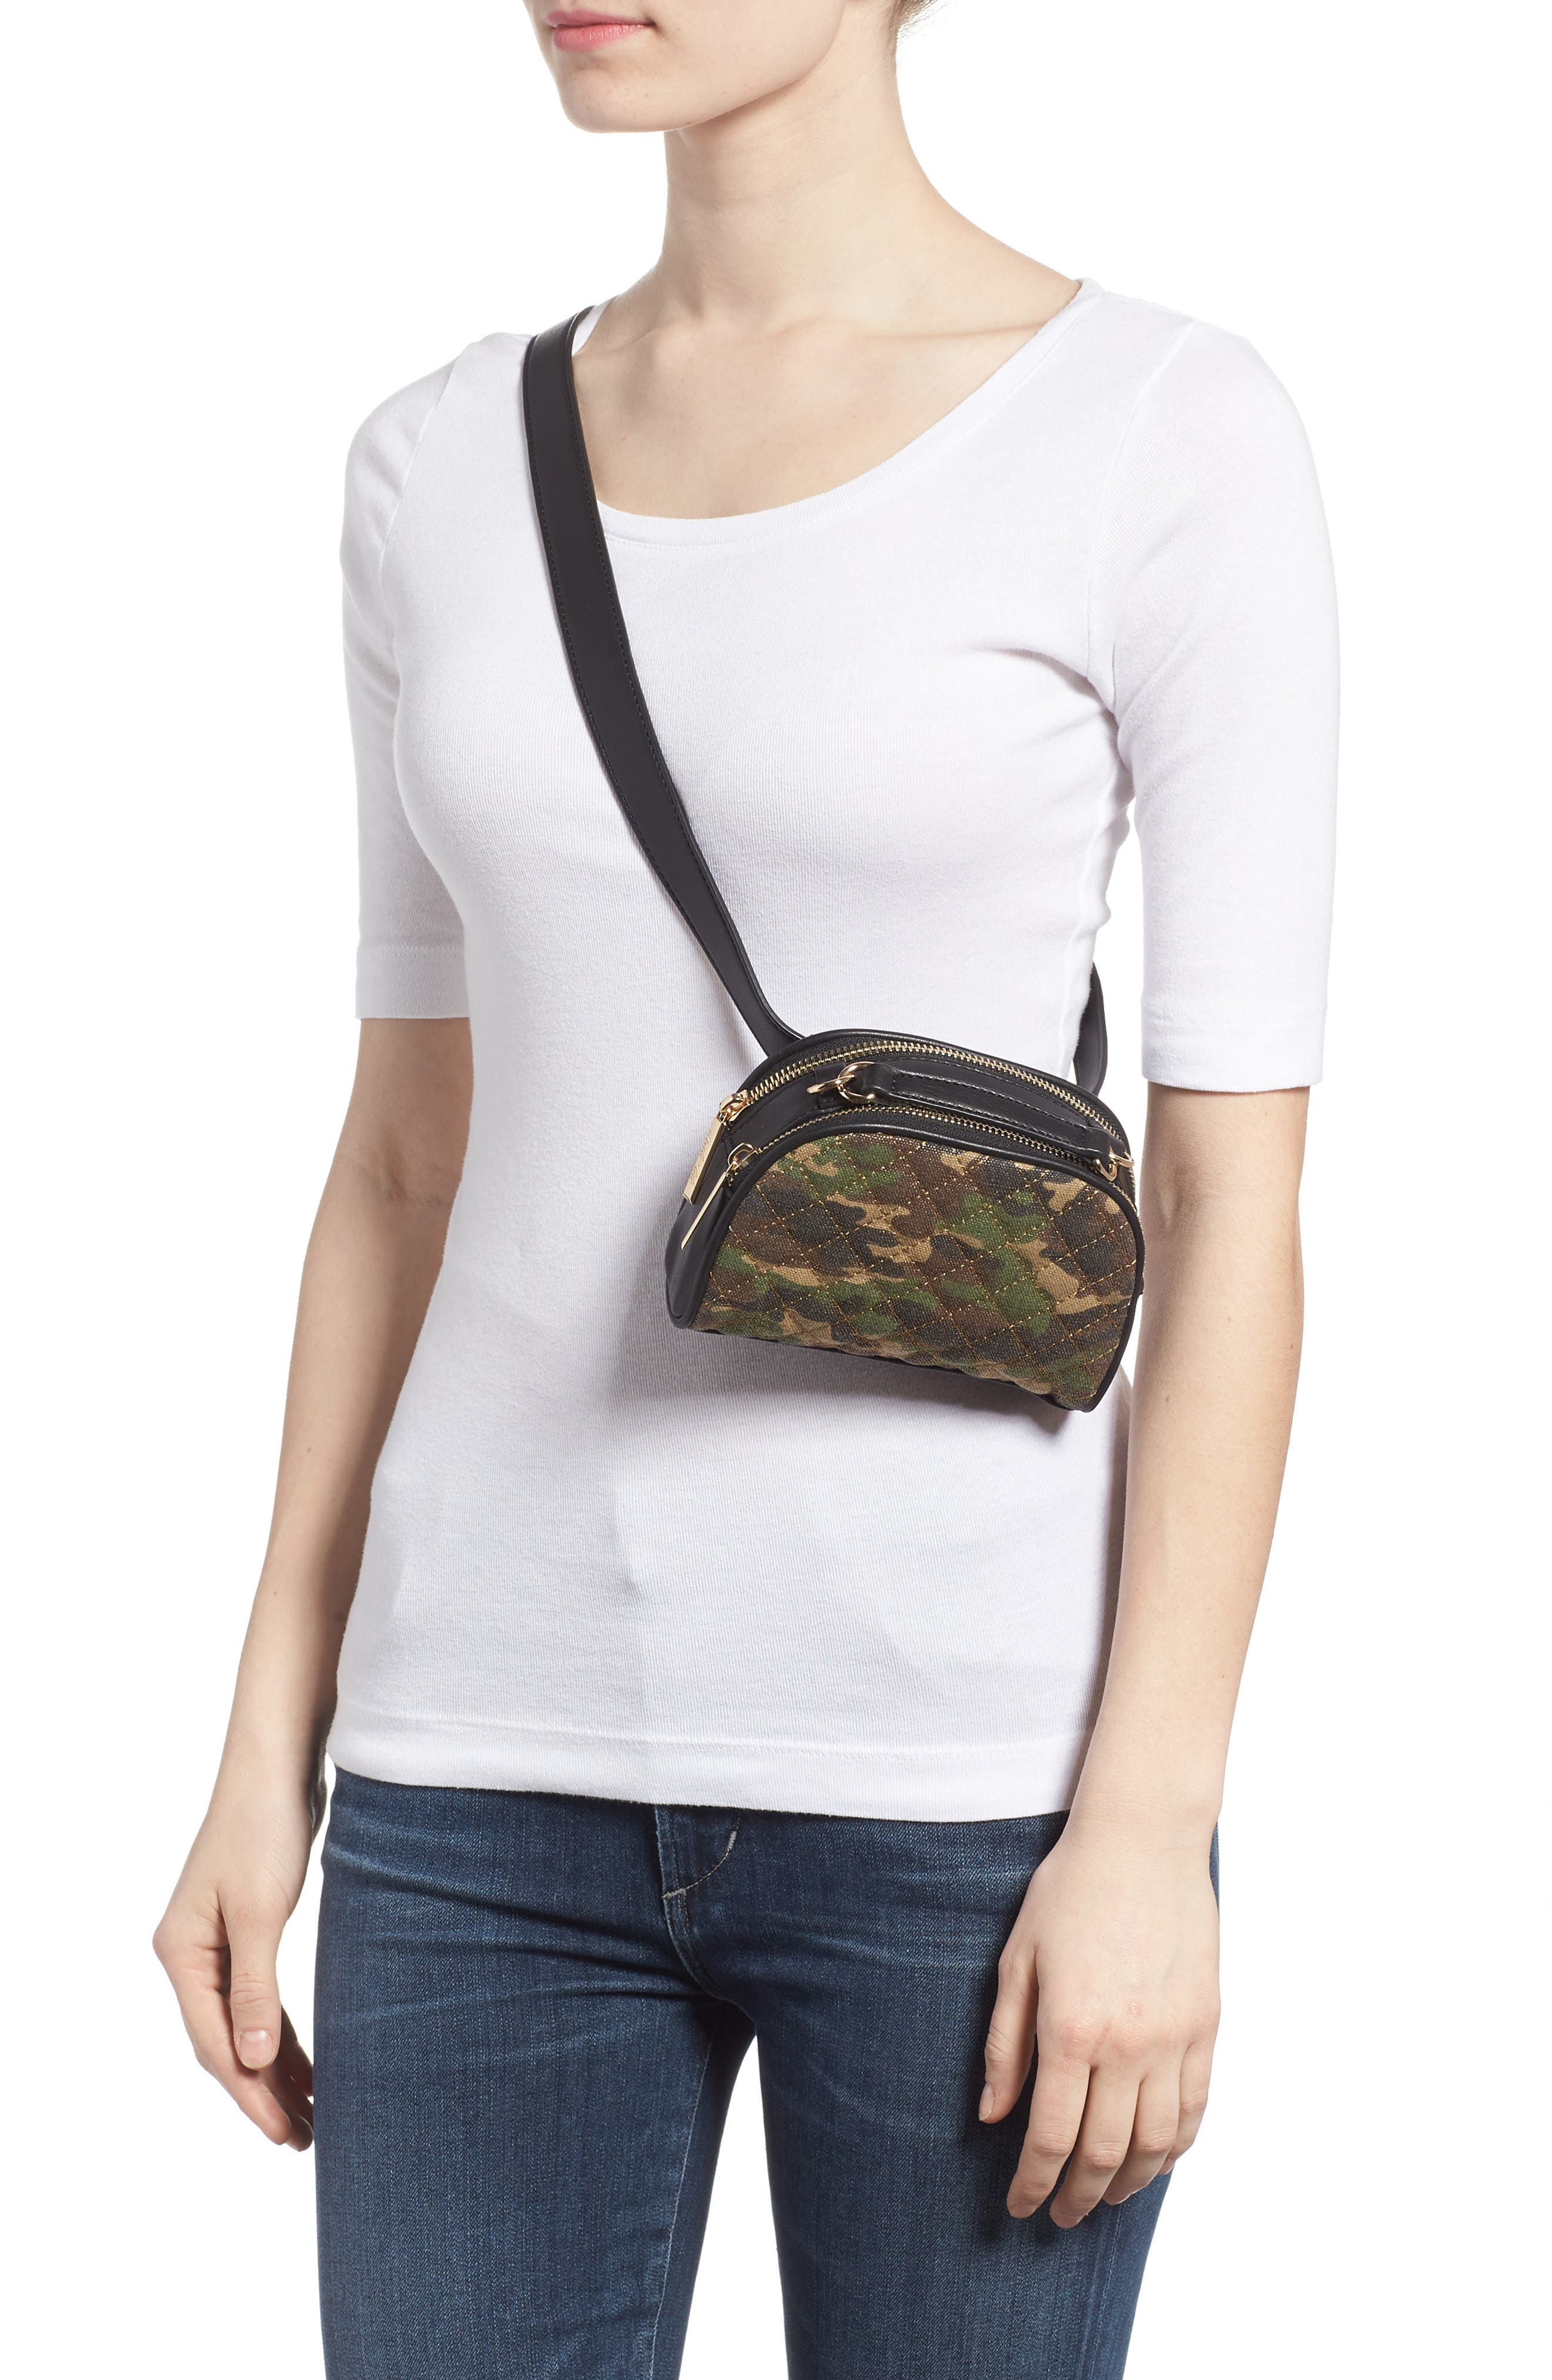 Mali + Lili Quilted Camouflage Belt Bag,                             Alternate thumbnail 3, color,                             Camouflage